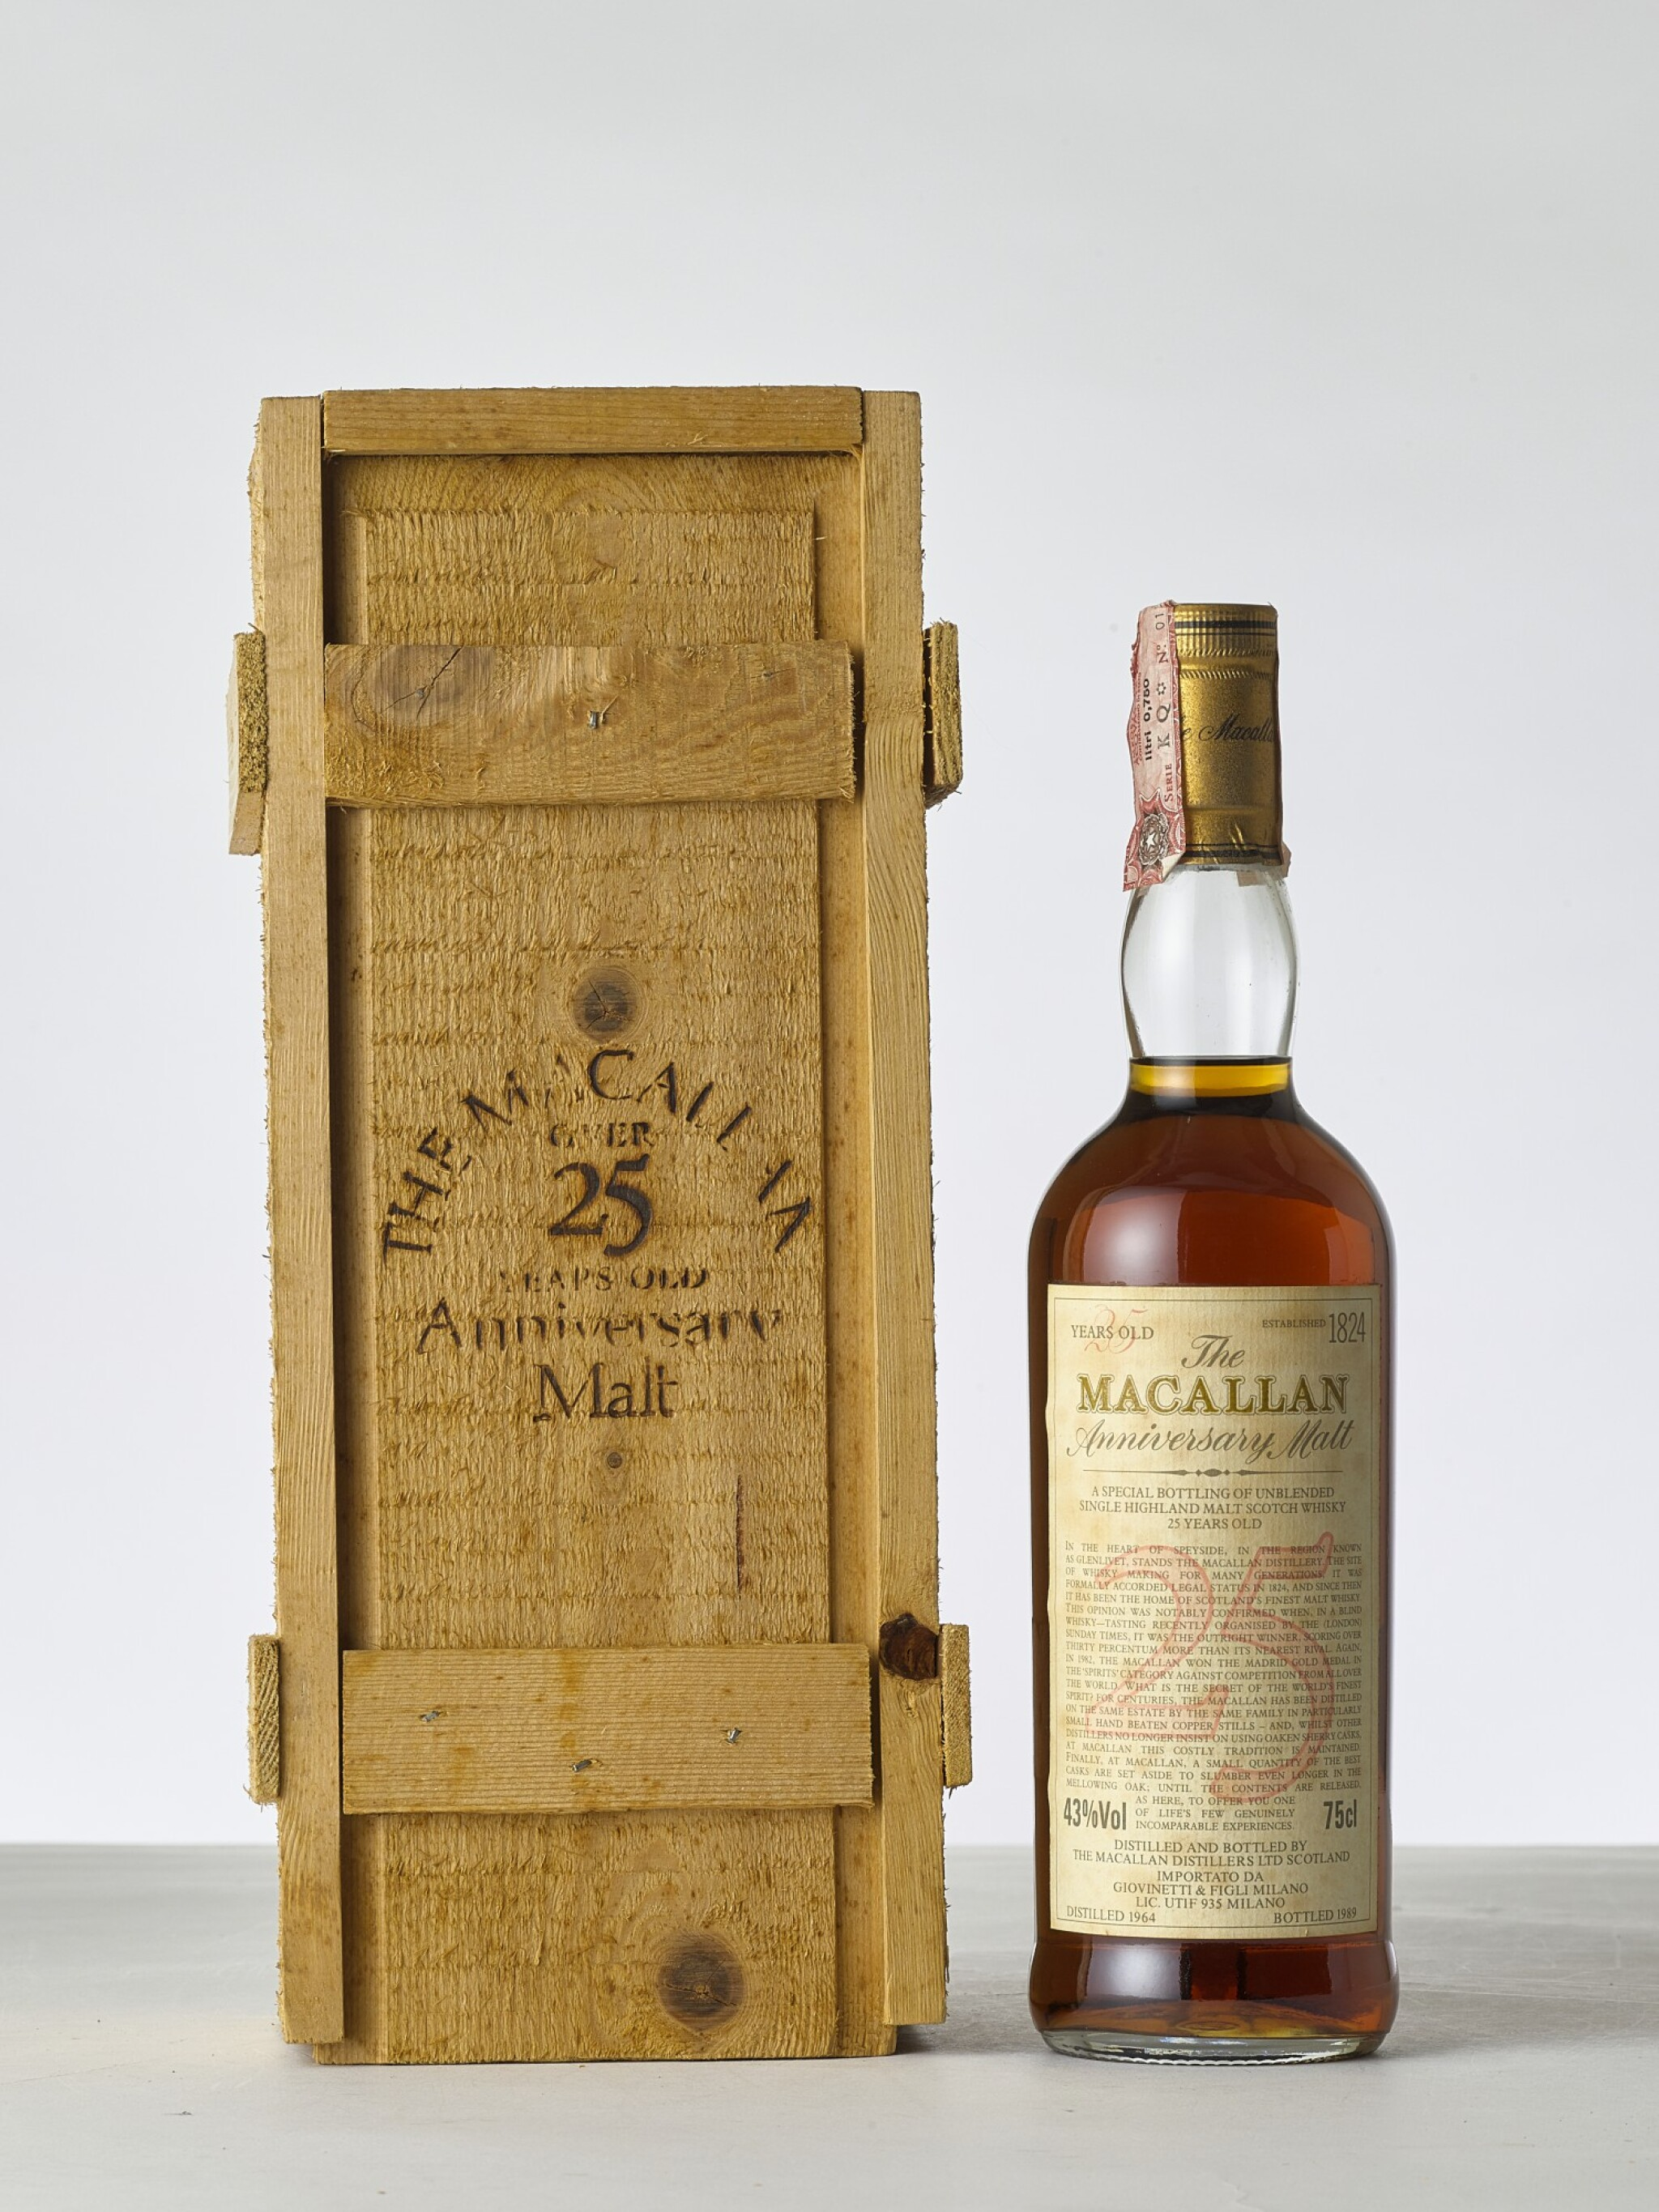 View 1 of Lot 2012. The Macallan 25 Year Old Anniversary Malt 43.0 abv 1964 (1 BT).